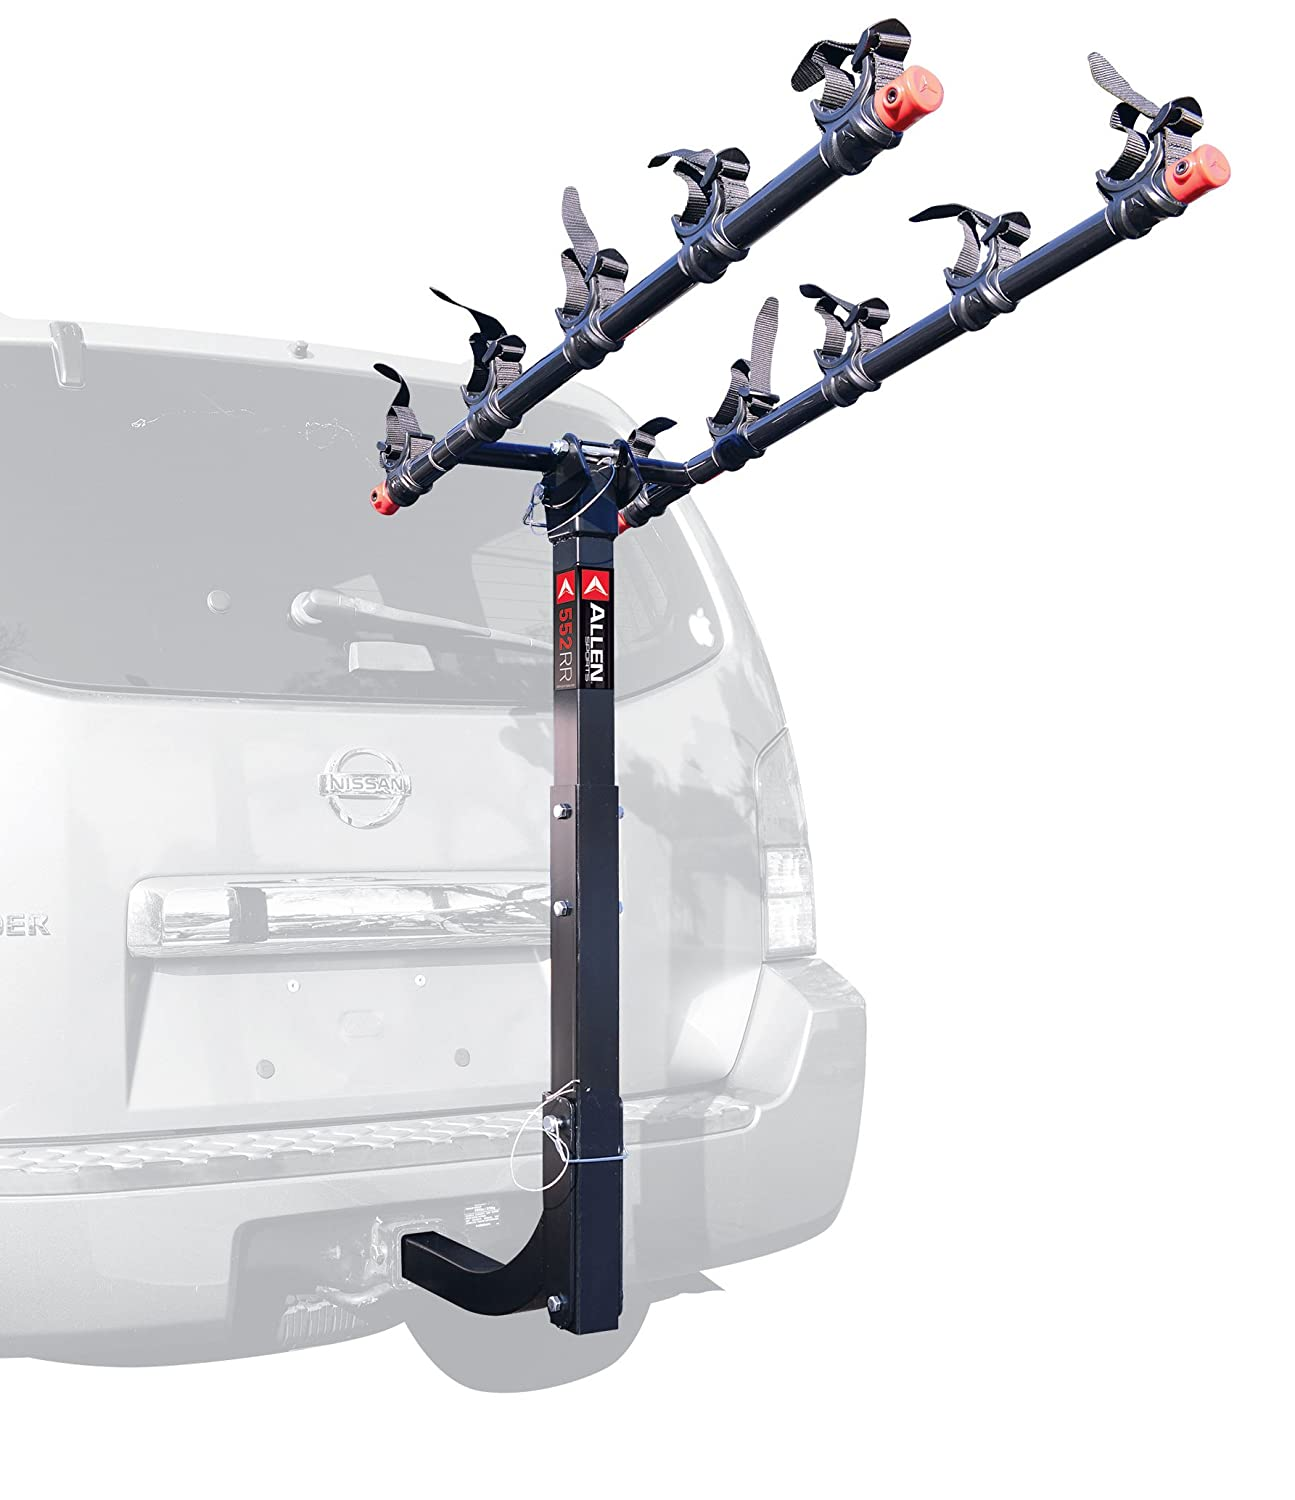 sports bicycle bar stand carrier tow universal rack outdoor for mount bike car leisure